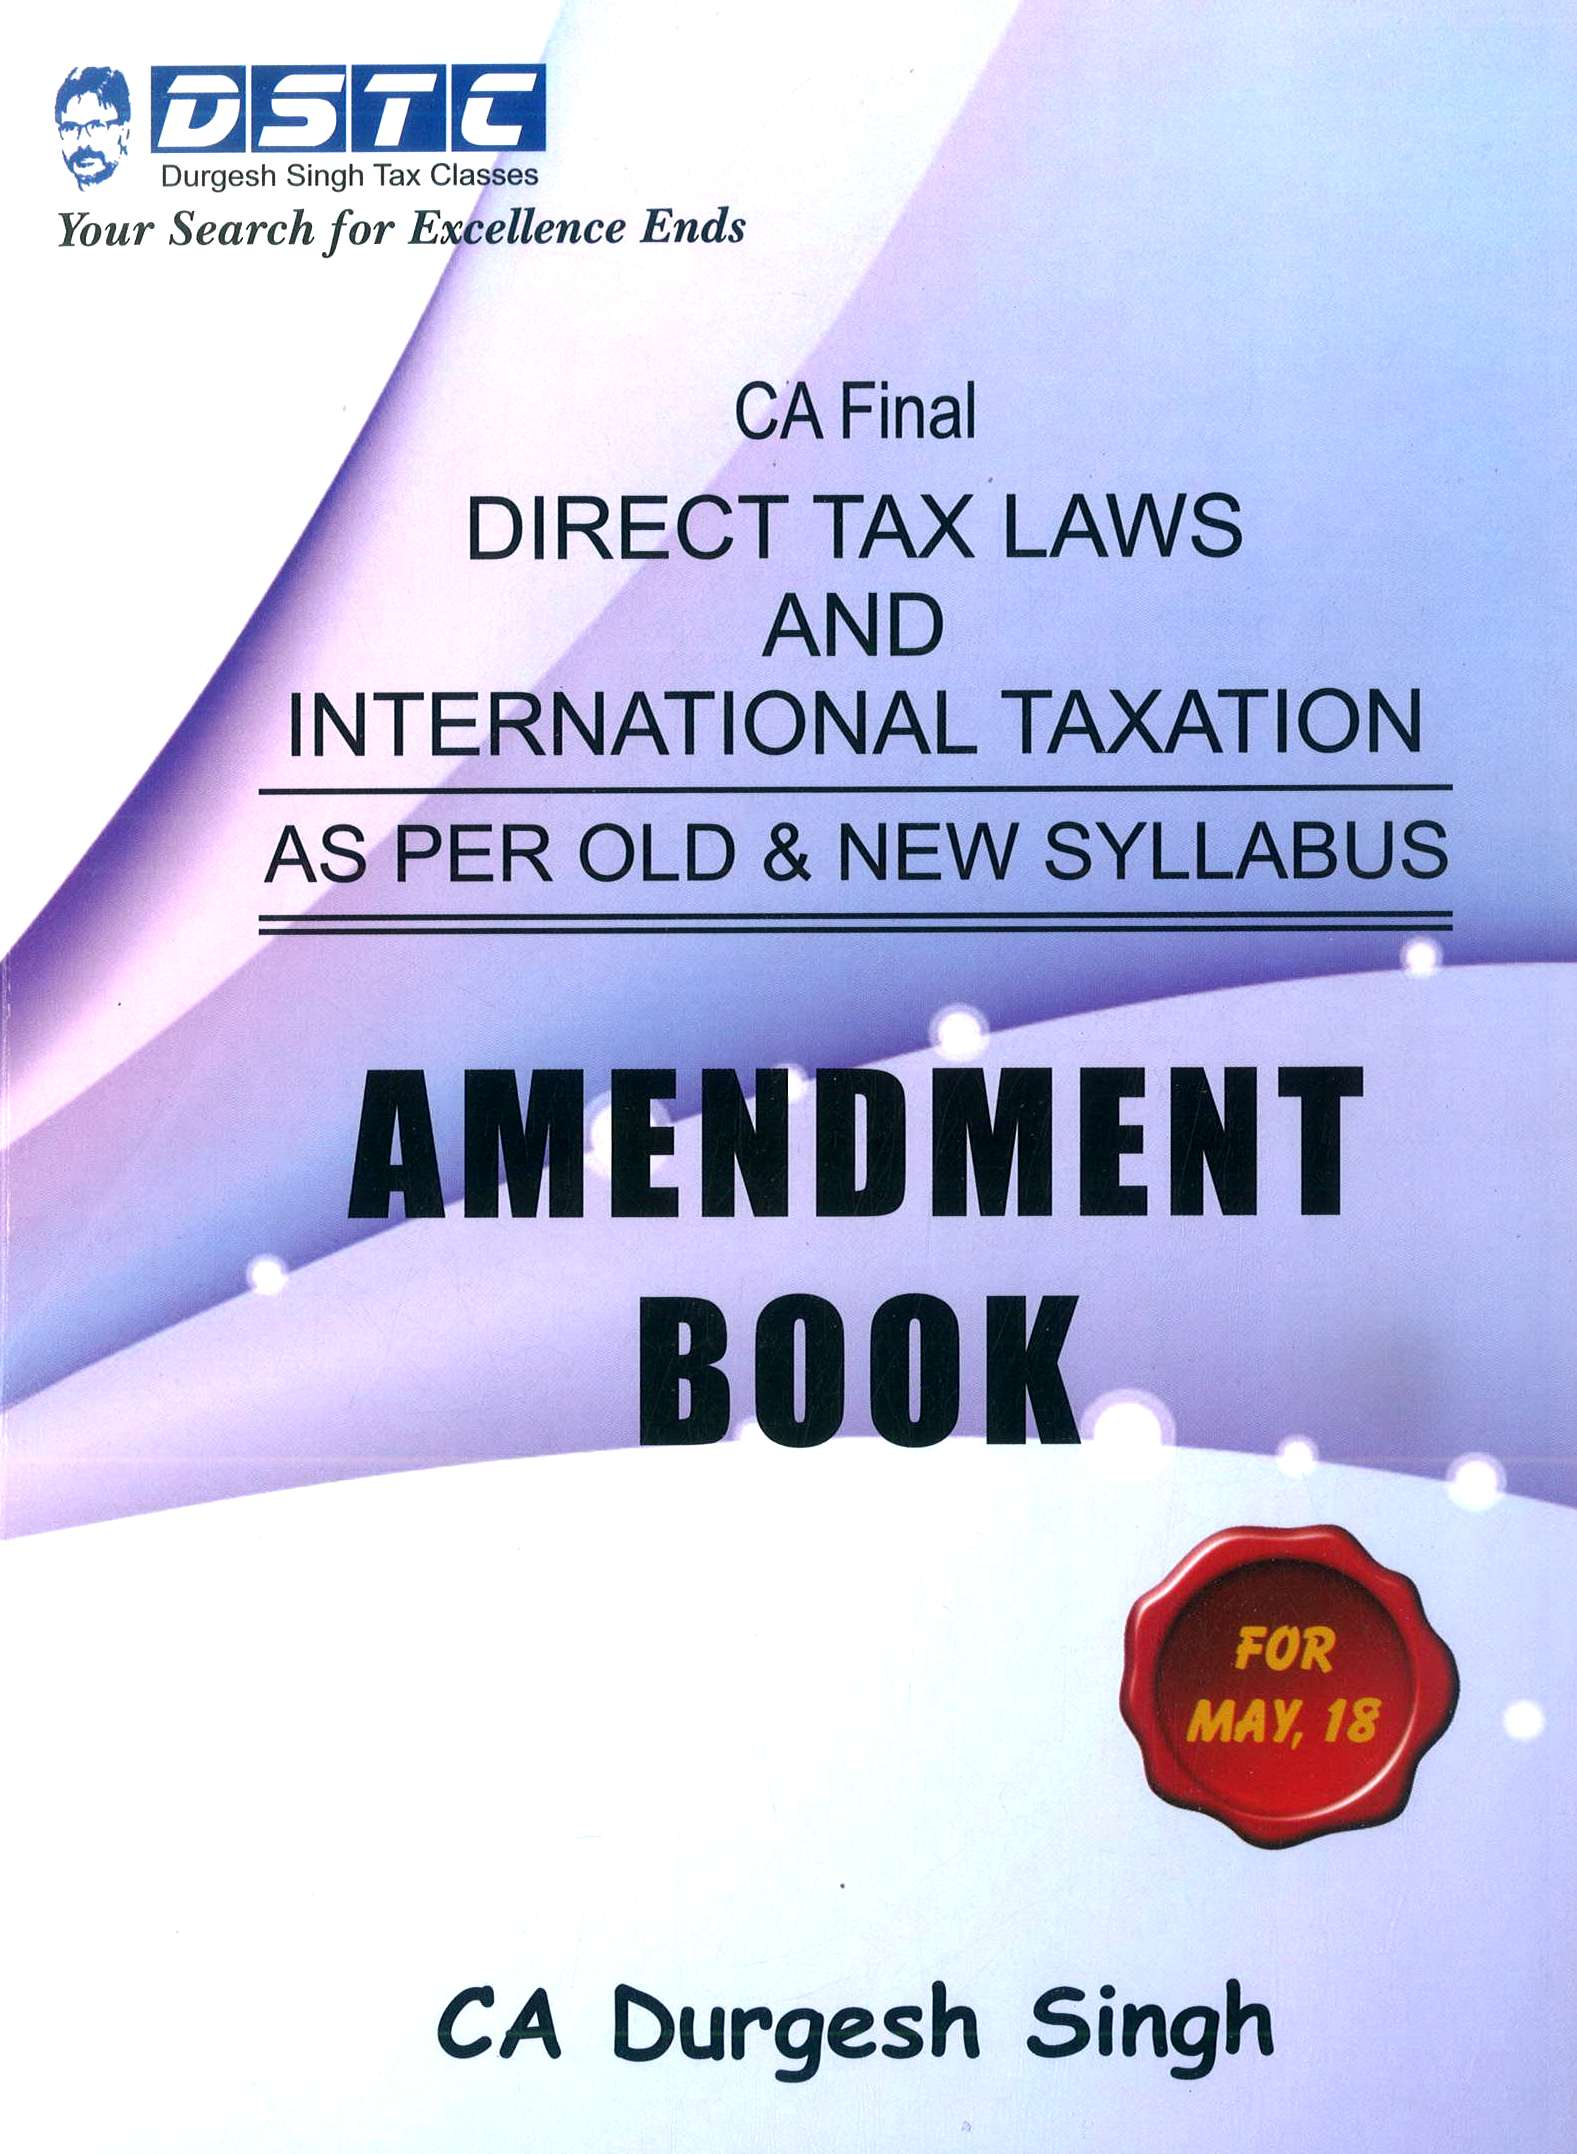 CA Final Direct Tax Laws and International taxation (Amendment Book) as per Old & New Syllabus By Durgesh Singh Applicable for May 2018 Exam